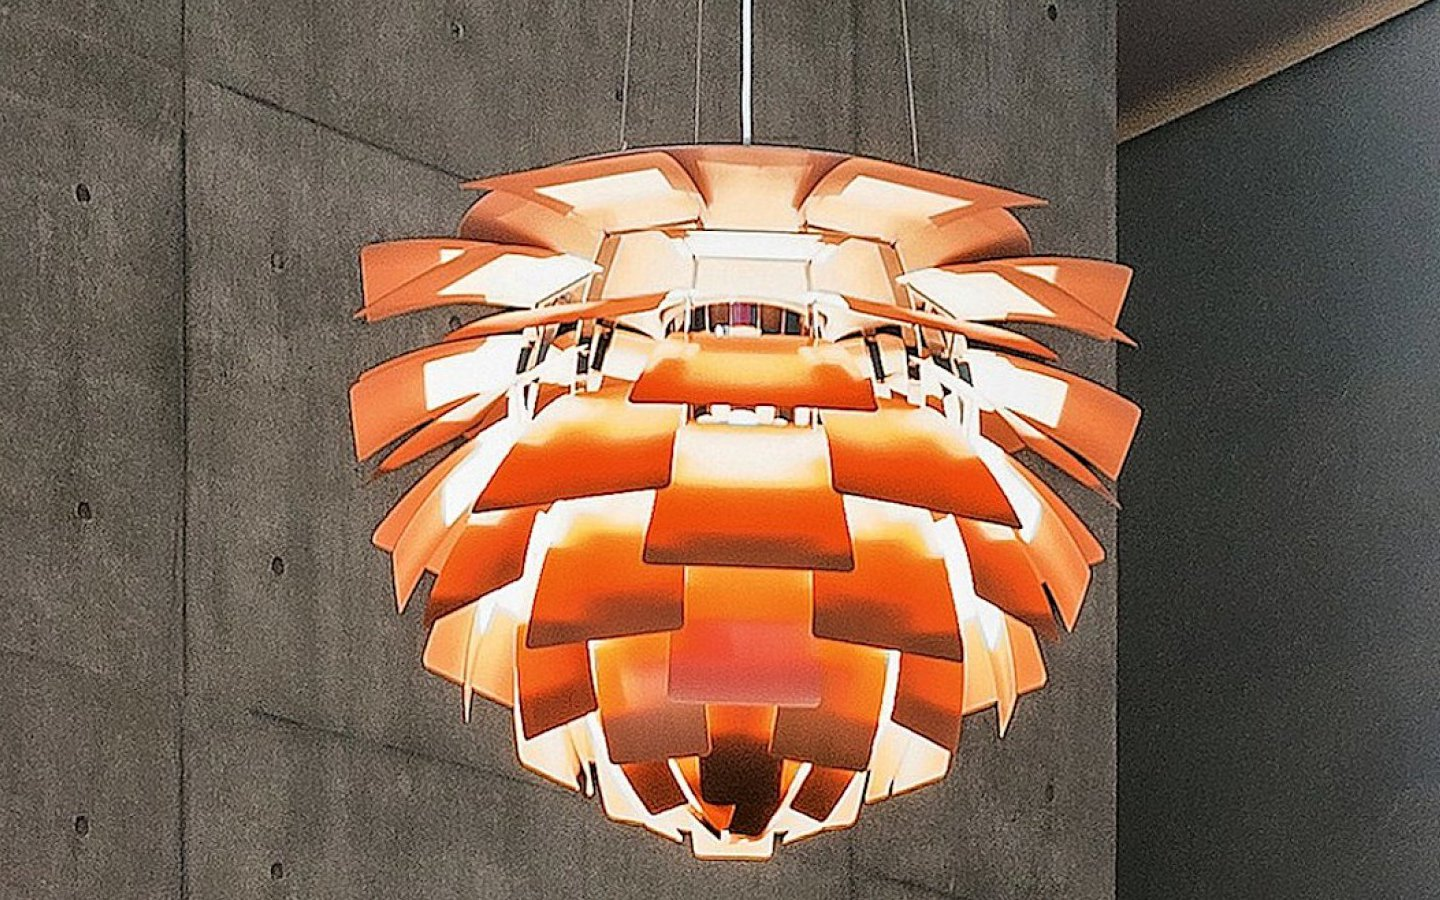 iconic lighting. One Of The Most Famous Lighting Design Icons In World Iconic D